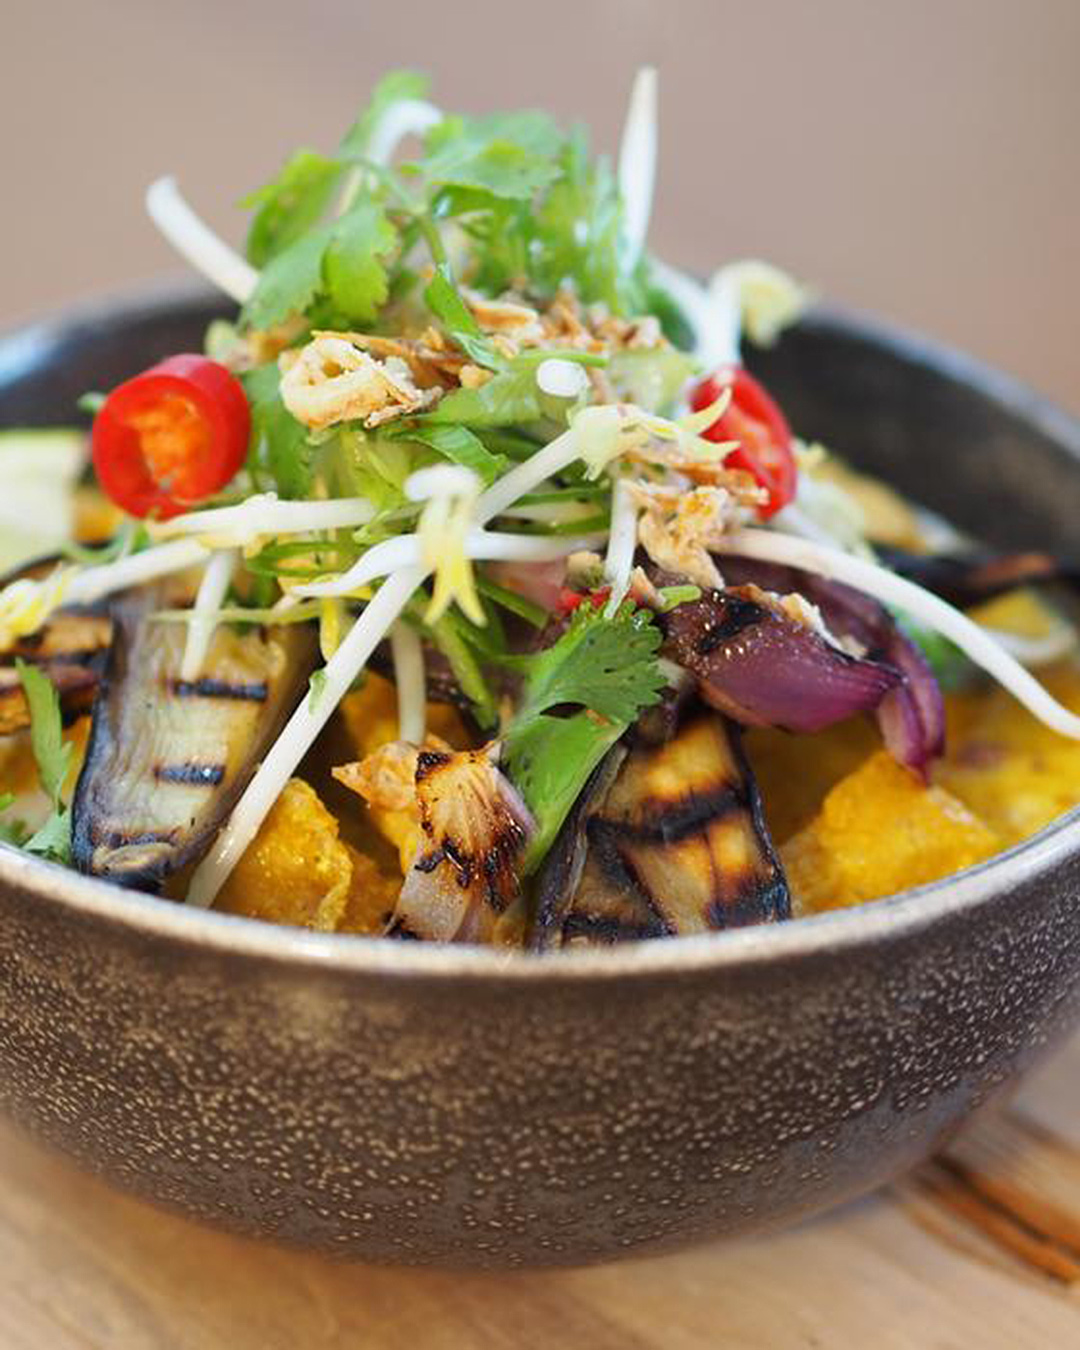 Delicious bowl of healthy looking food with greens and grilled aubergine.